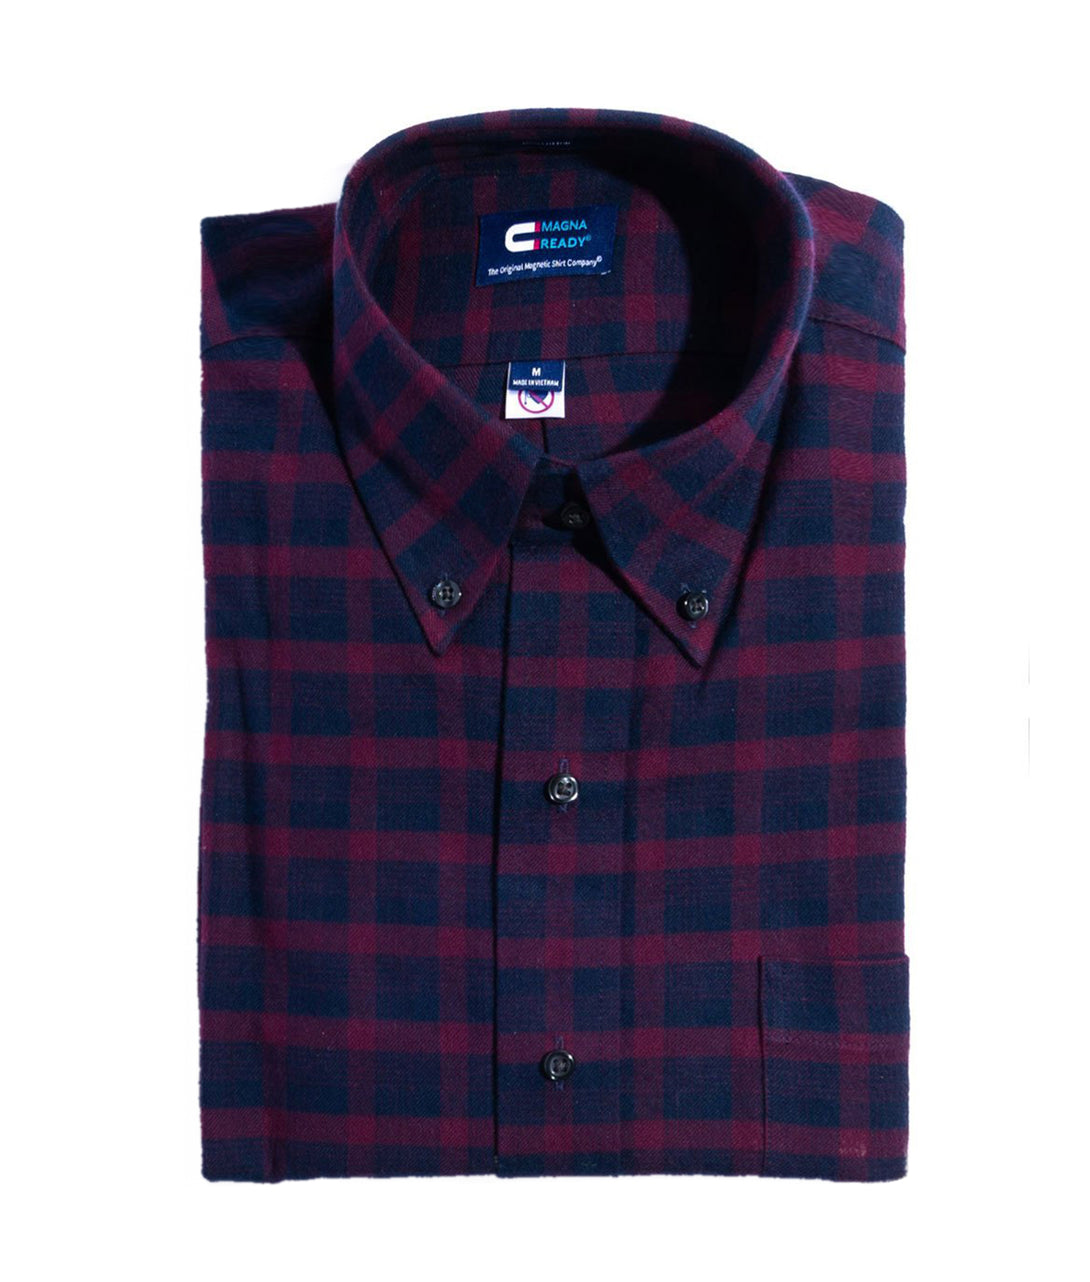 Burgundy Plaid Flannel Long Sleeve Shirt with Magnetic Closures | JUNIPERunltd